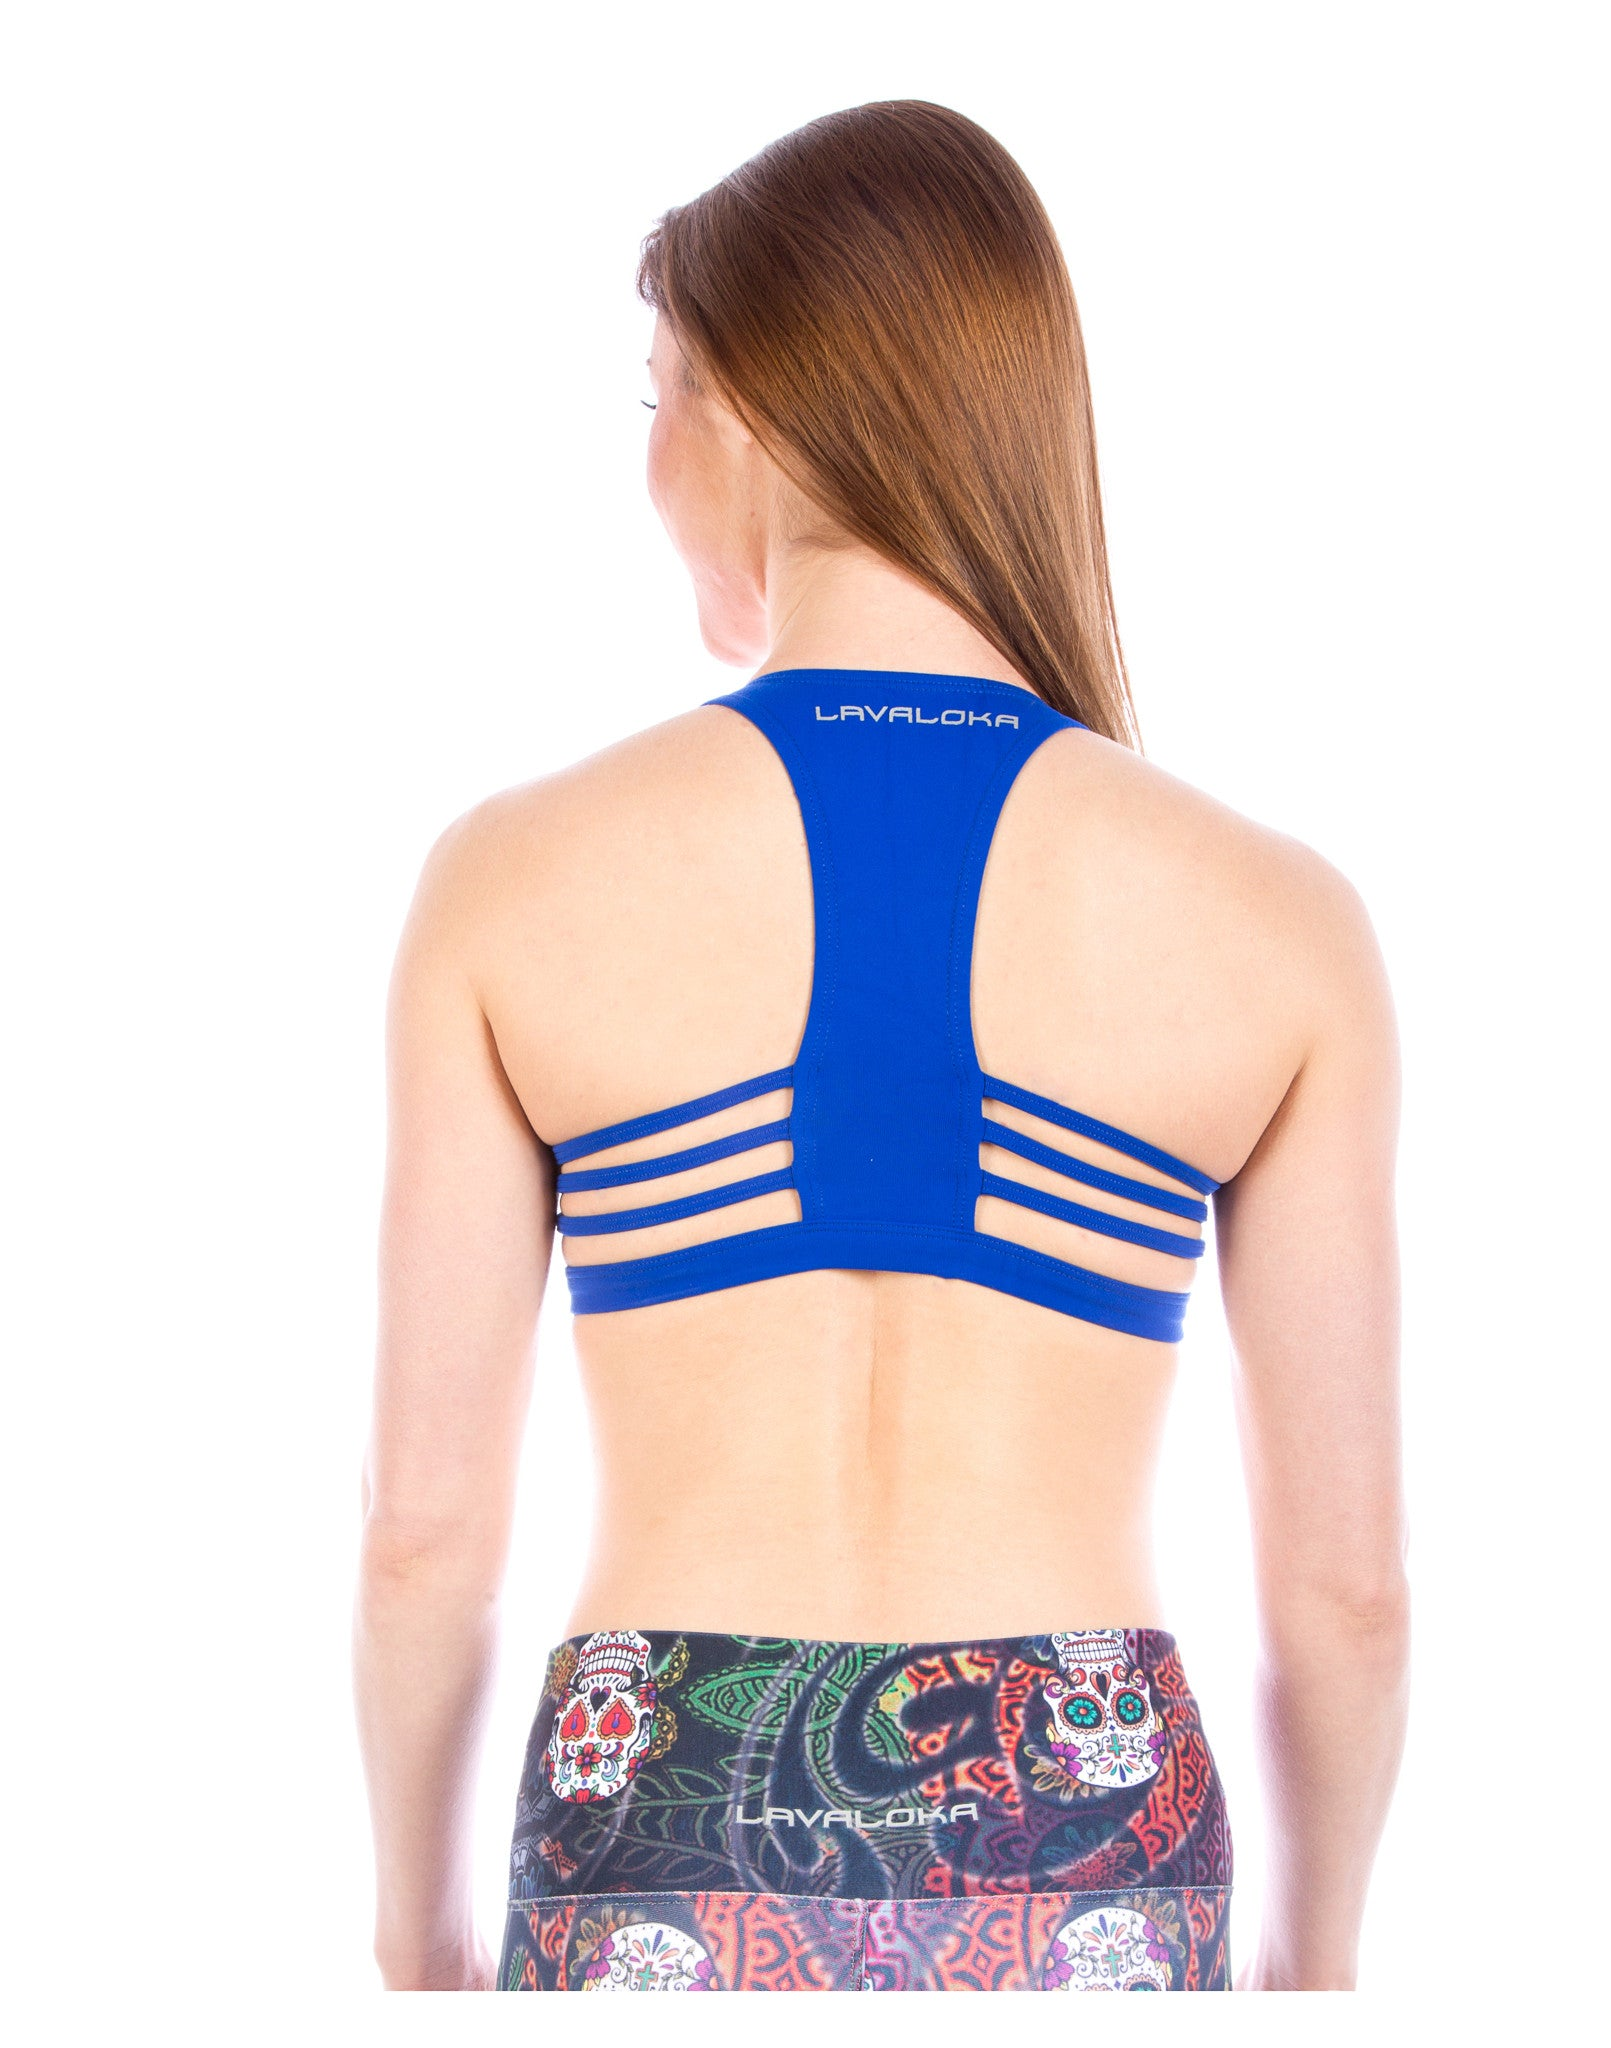 Maria Sports Bra - Sports Bra Collection LavaLoka - Blue - buy now in every color